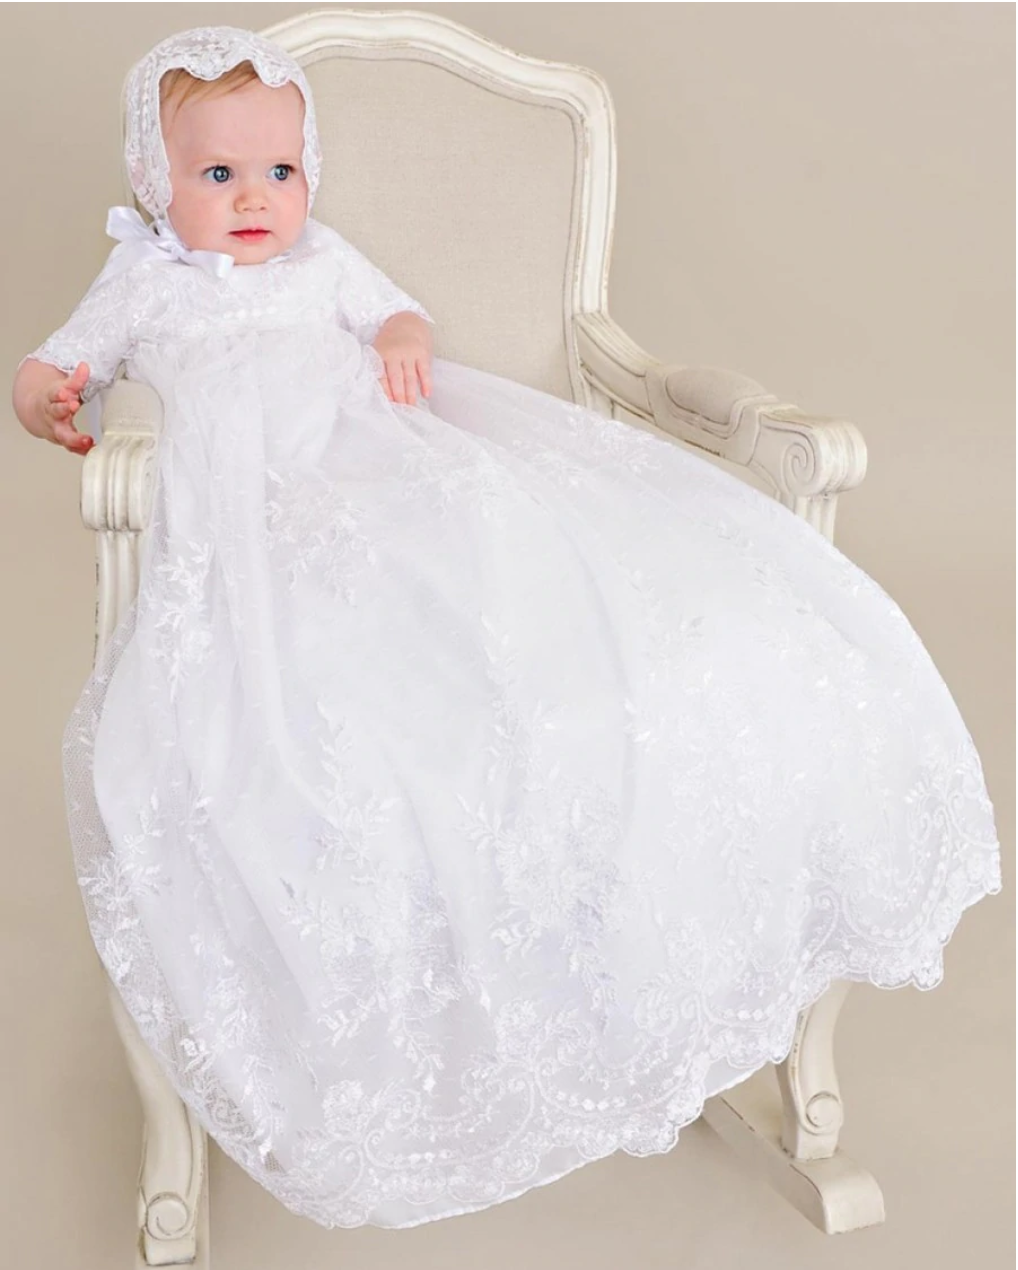 Christening Photo Shoot Tips